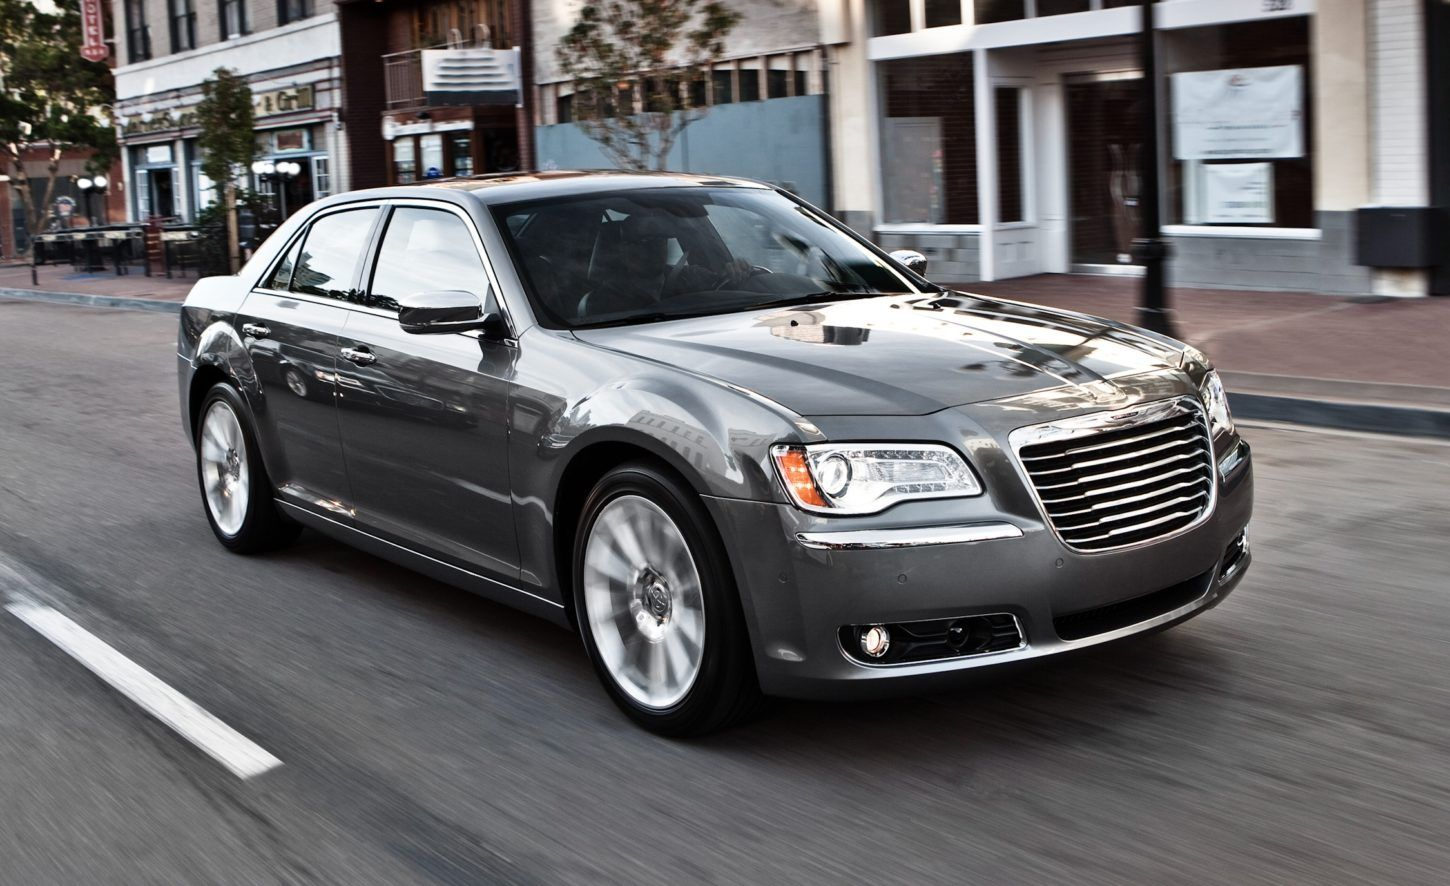 2019 Chrysler 300 Release Date And Price Chrysler 300 2012